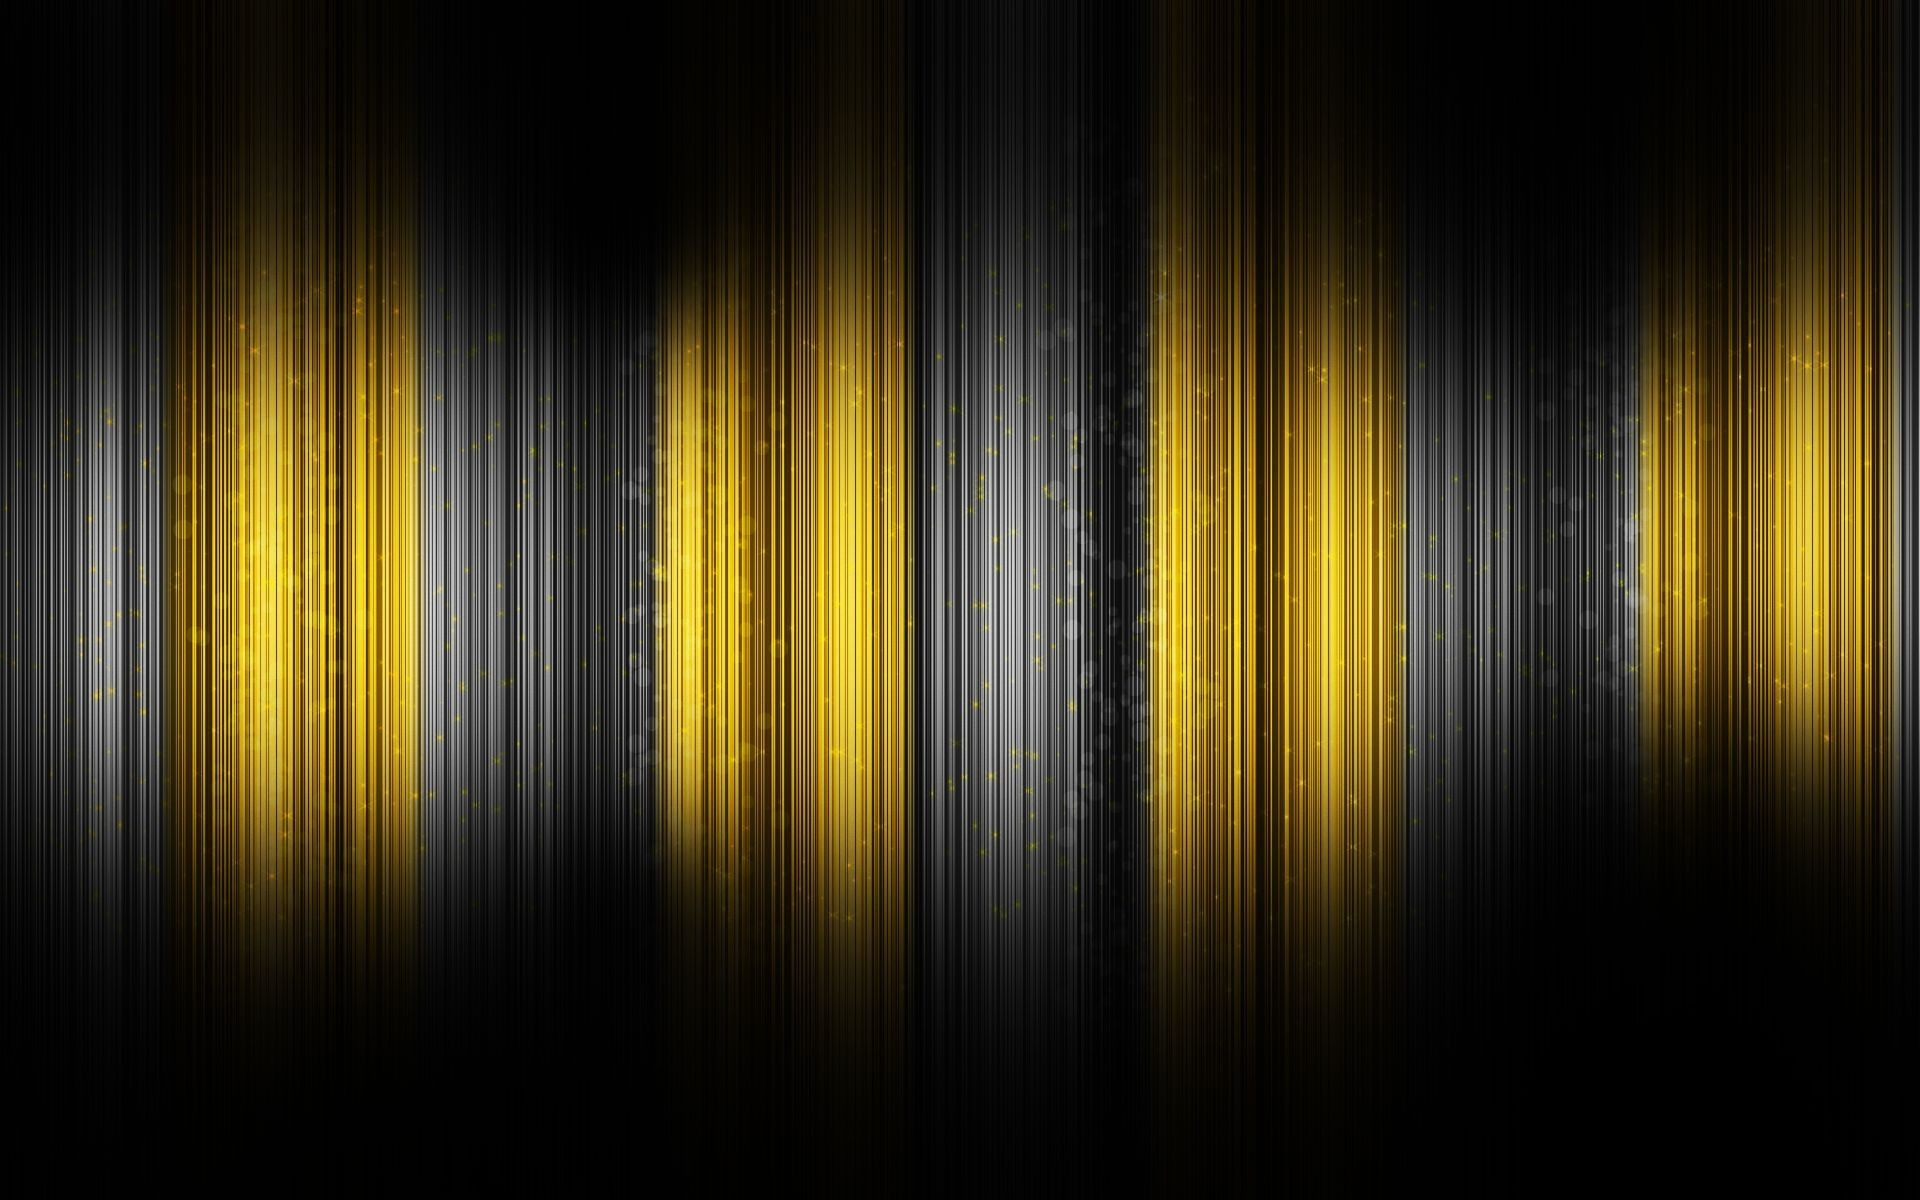 Abstract-yellow-and-black-latest-hd-wallpaper –